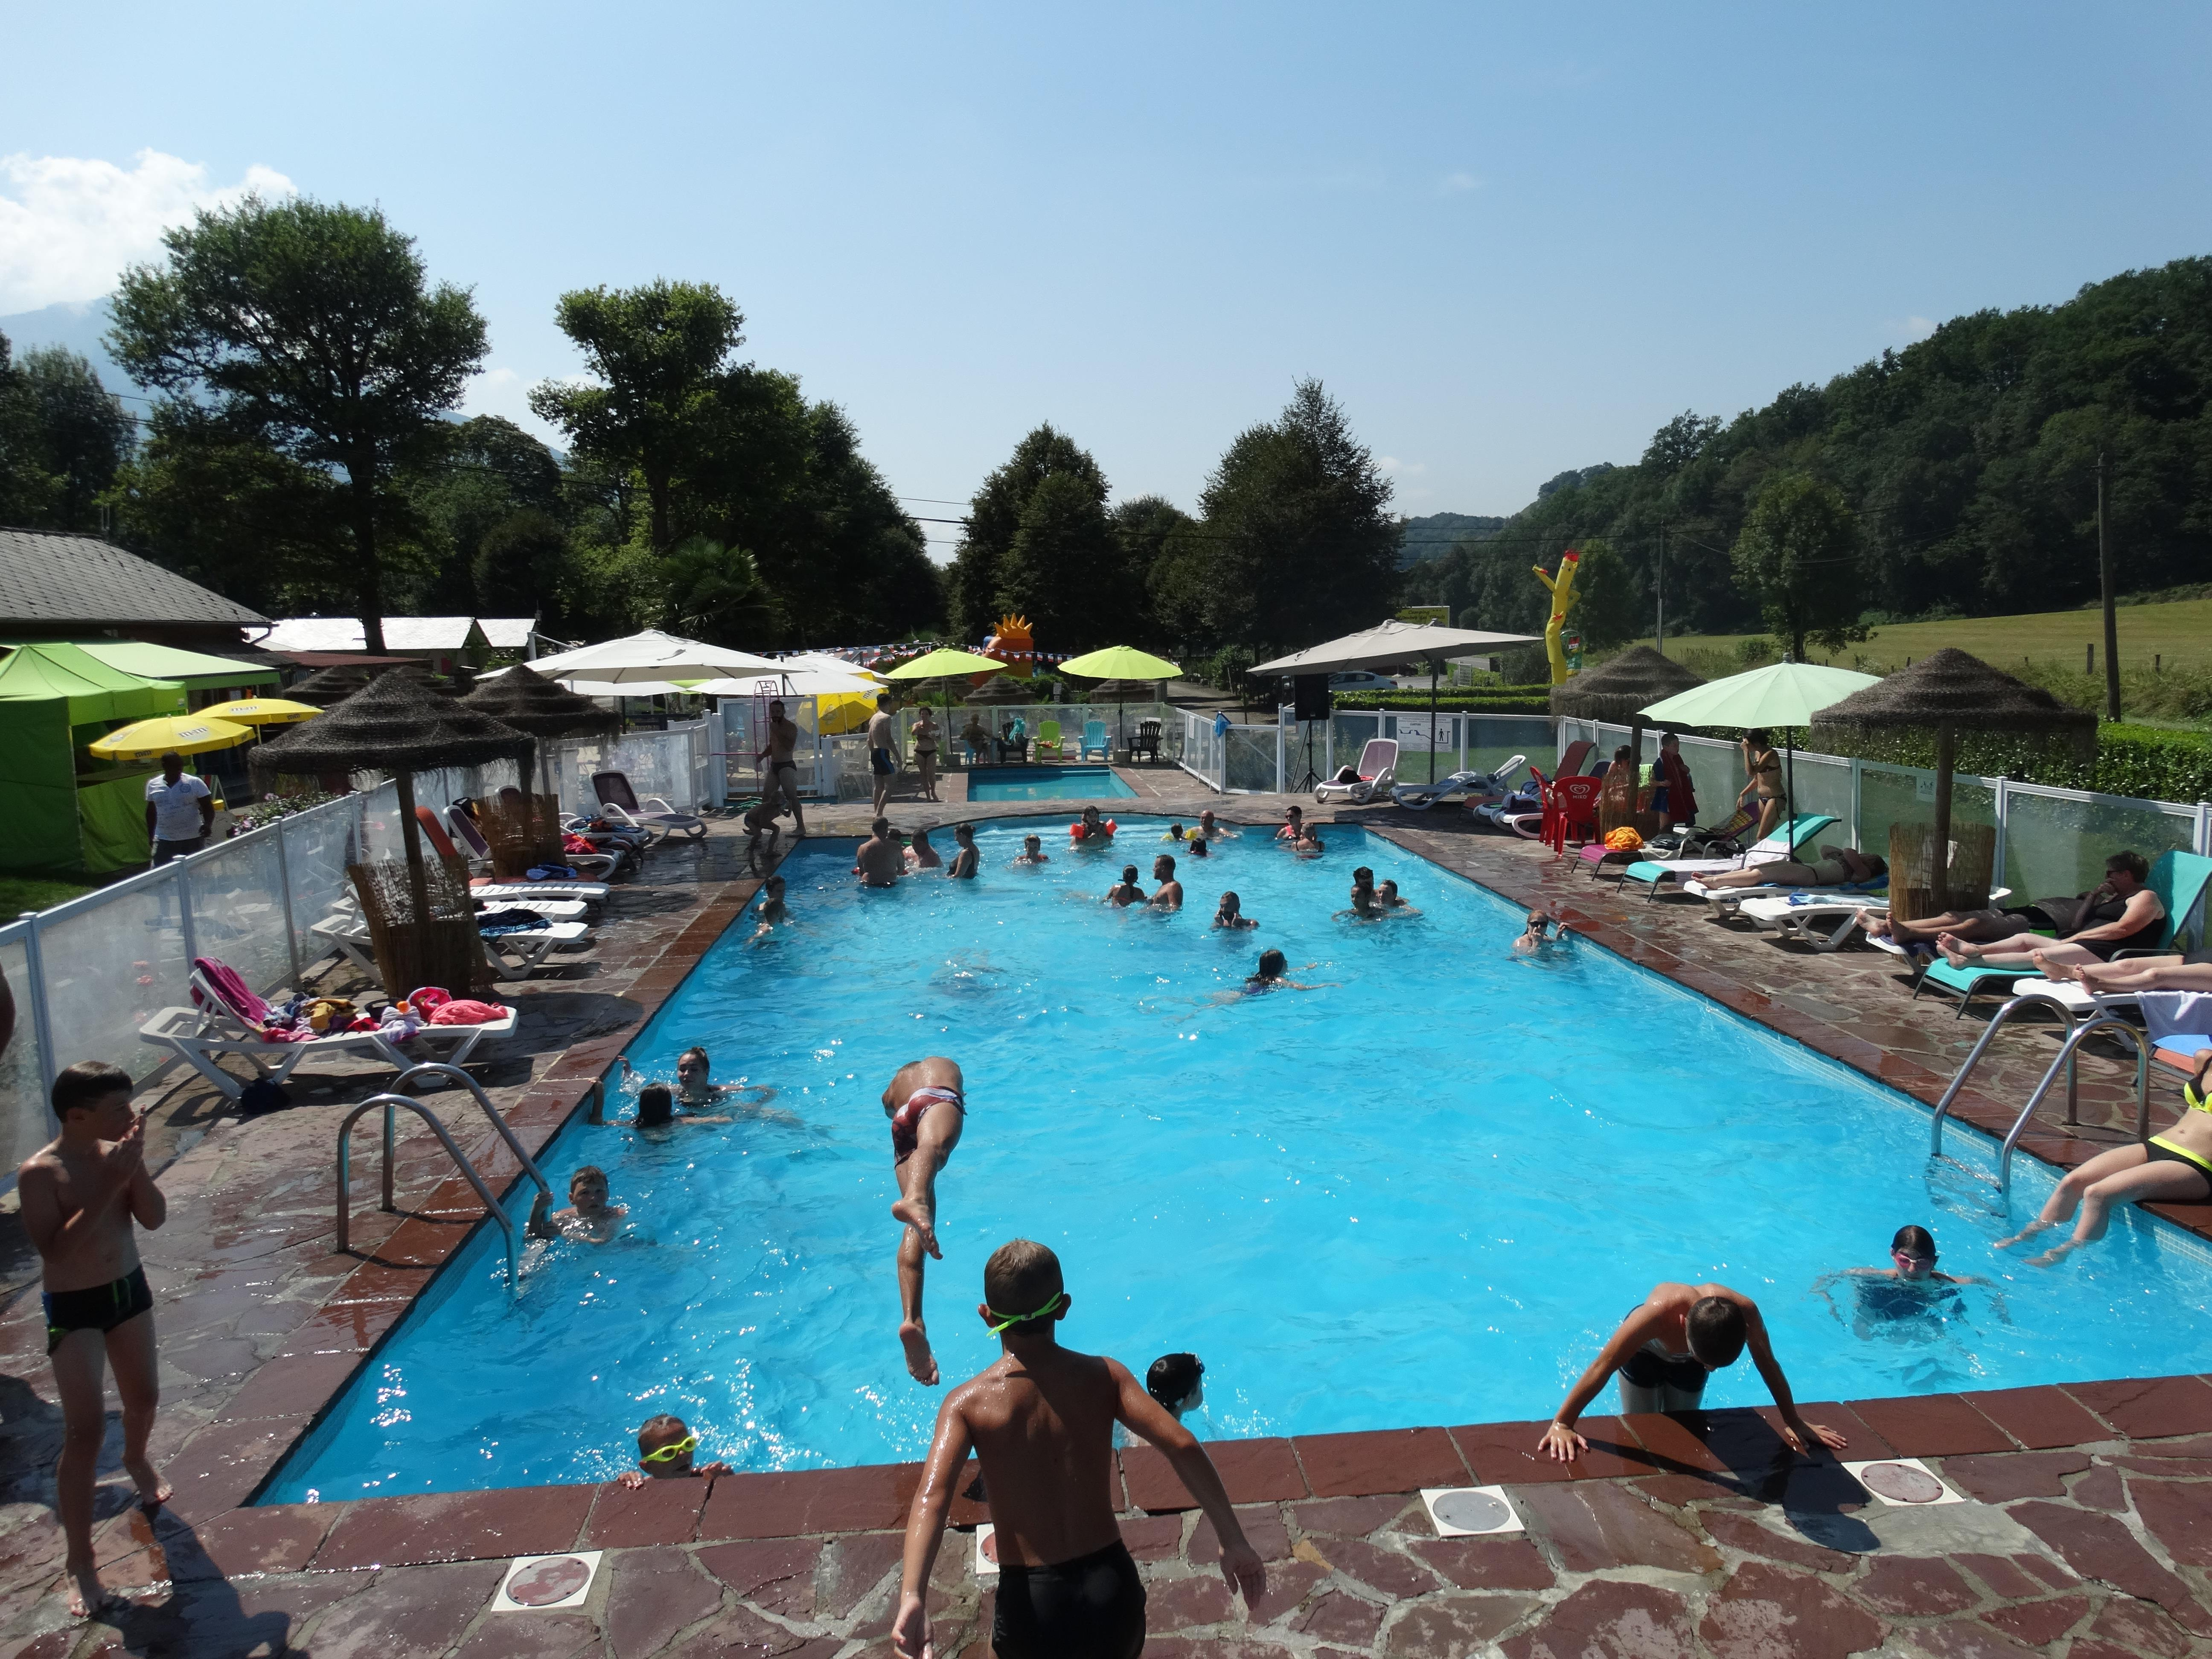 Mare, piscina Camping A L'ombre Des Tilleuls - Peyrouse